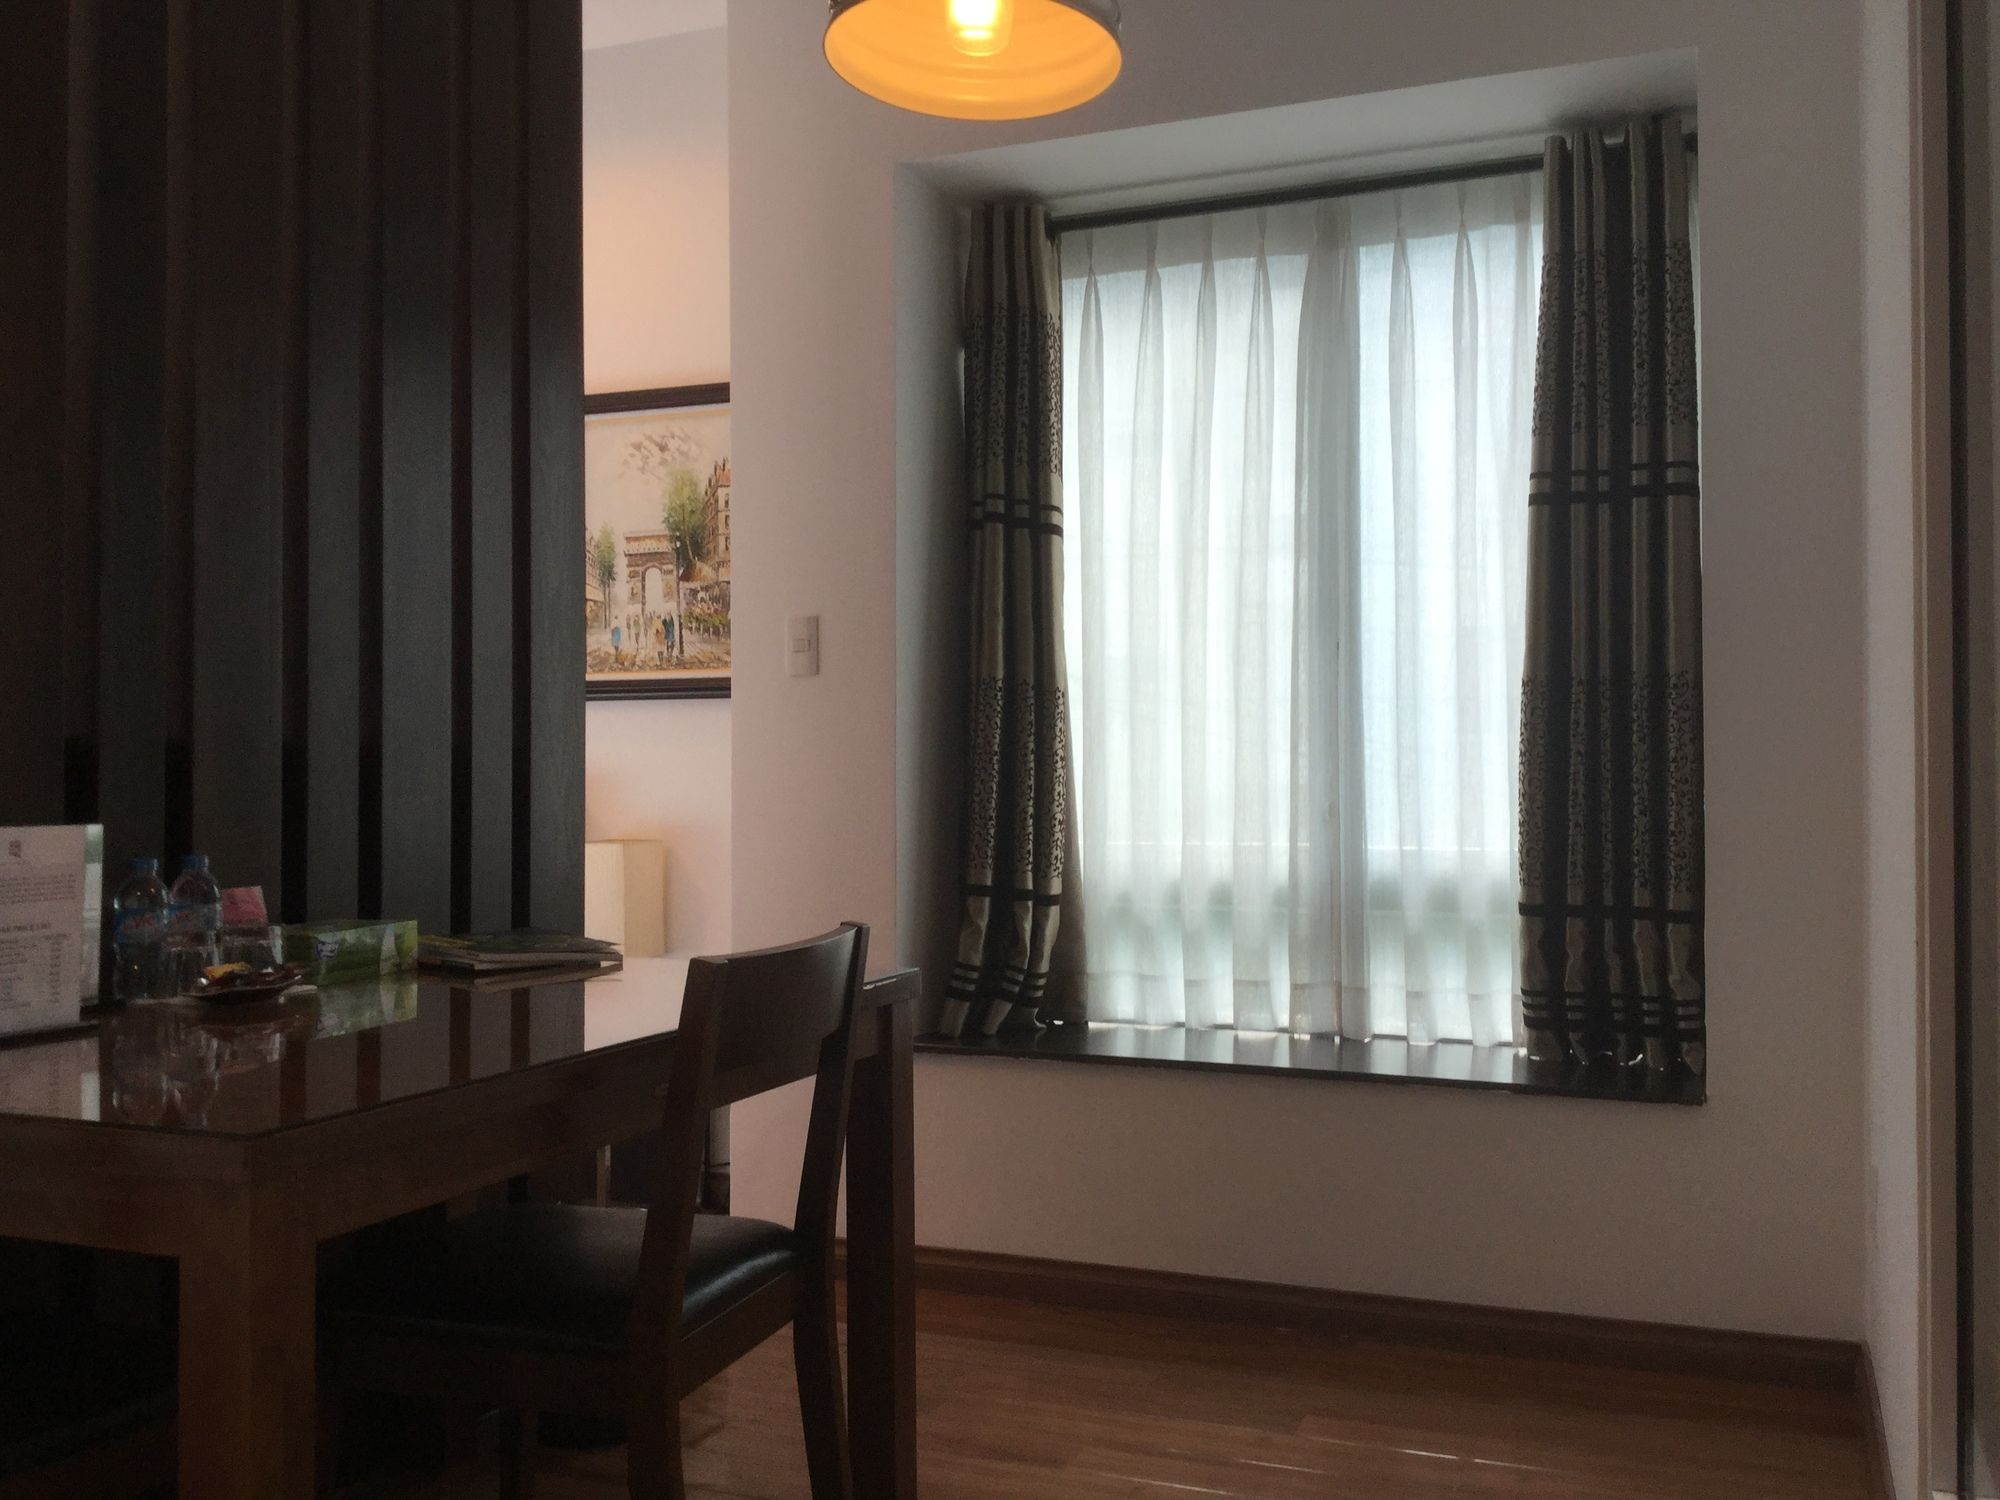 Gallery image of Torino Hotels